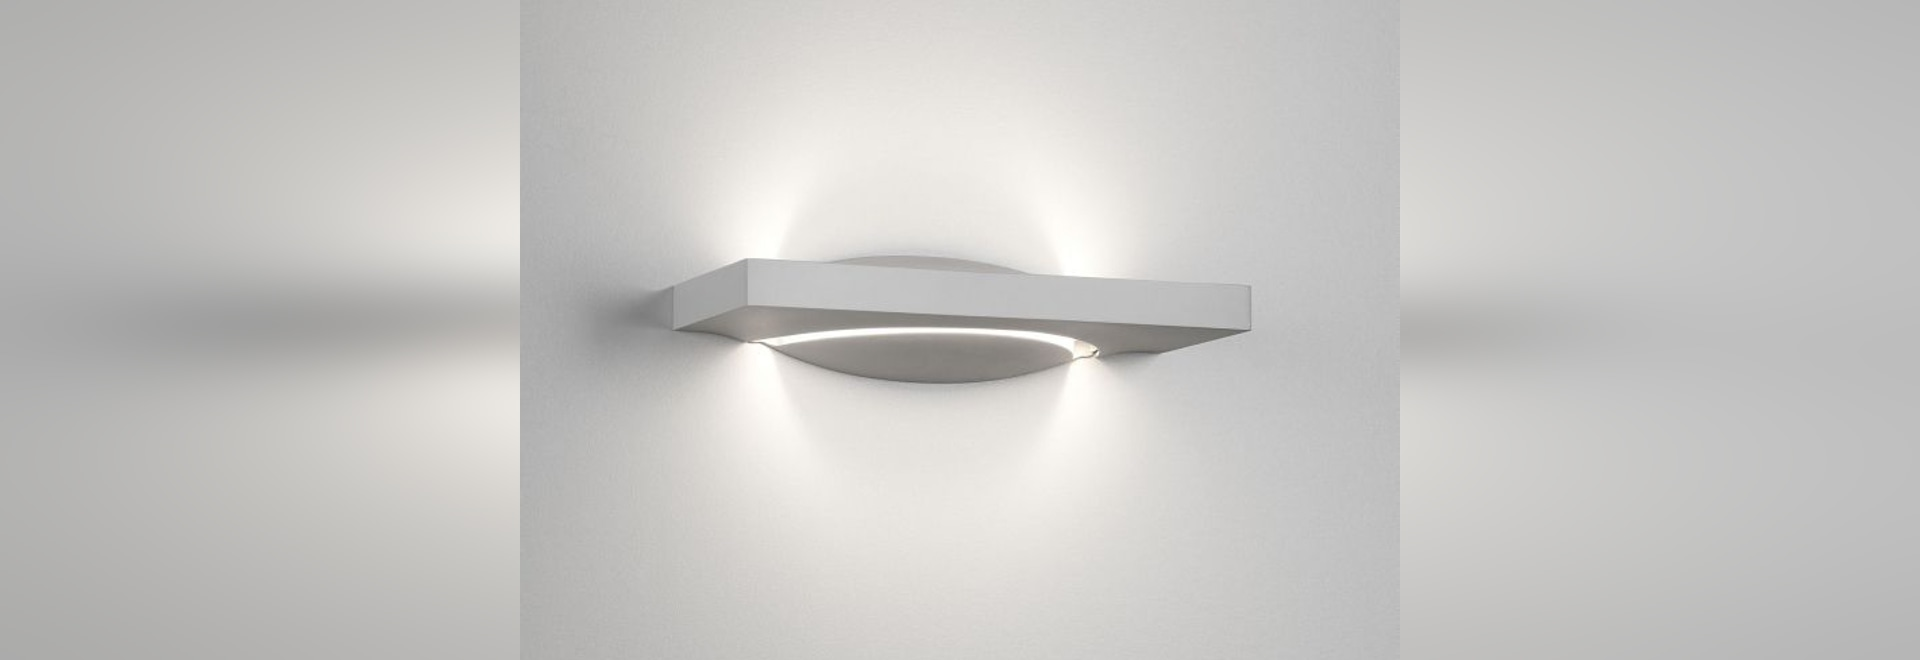 New pogo contemporary wall light by delta light delta light new pogo contemporary wall light by delta light aloadofball Images